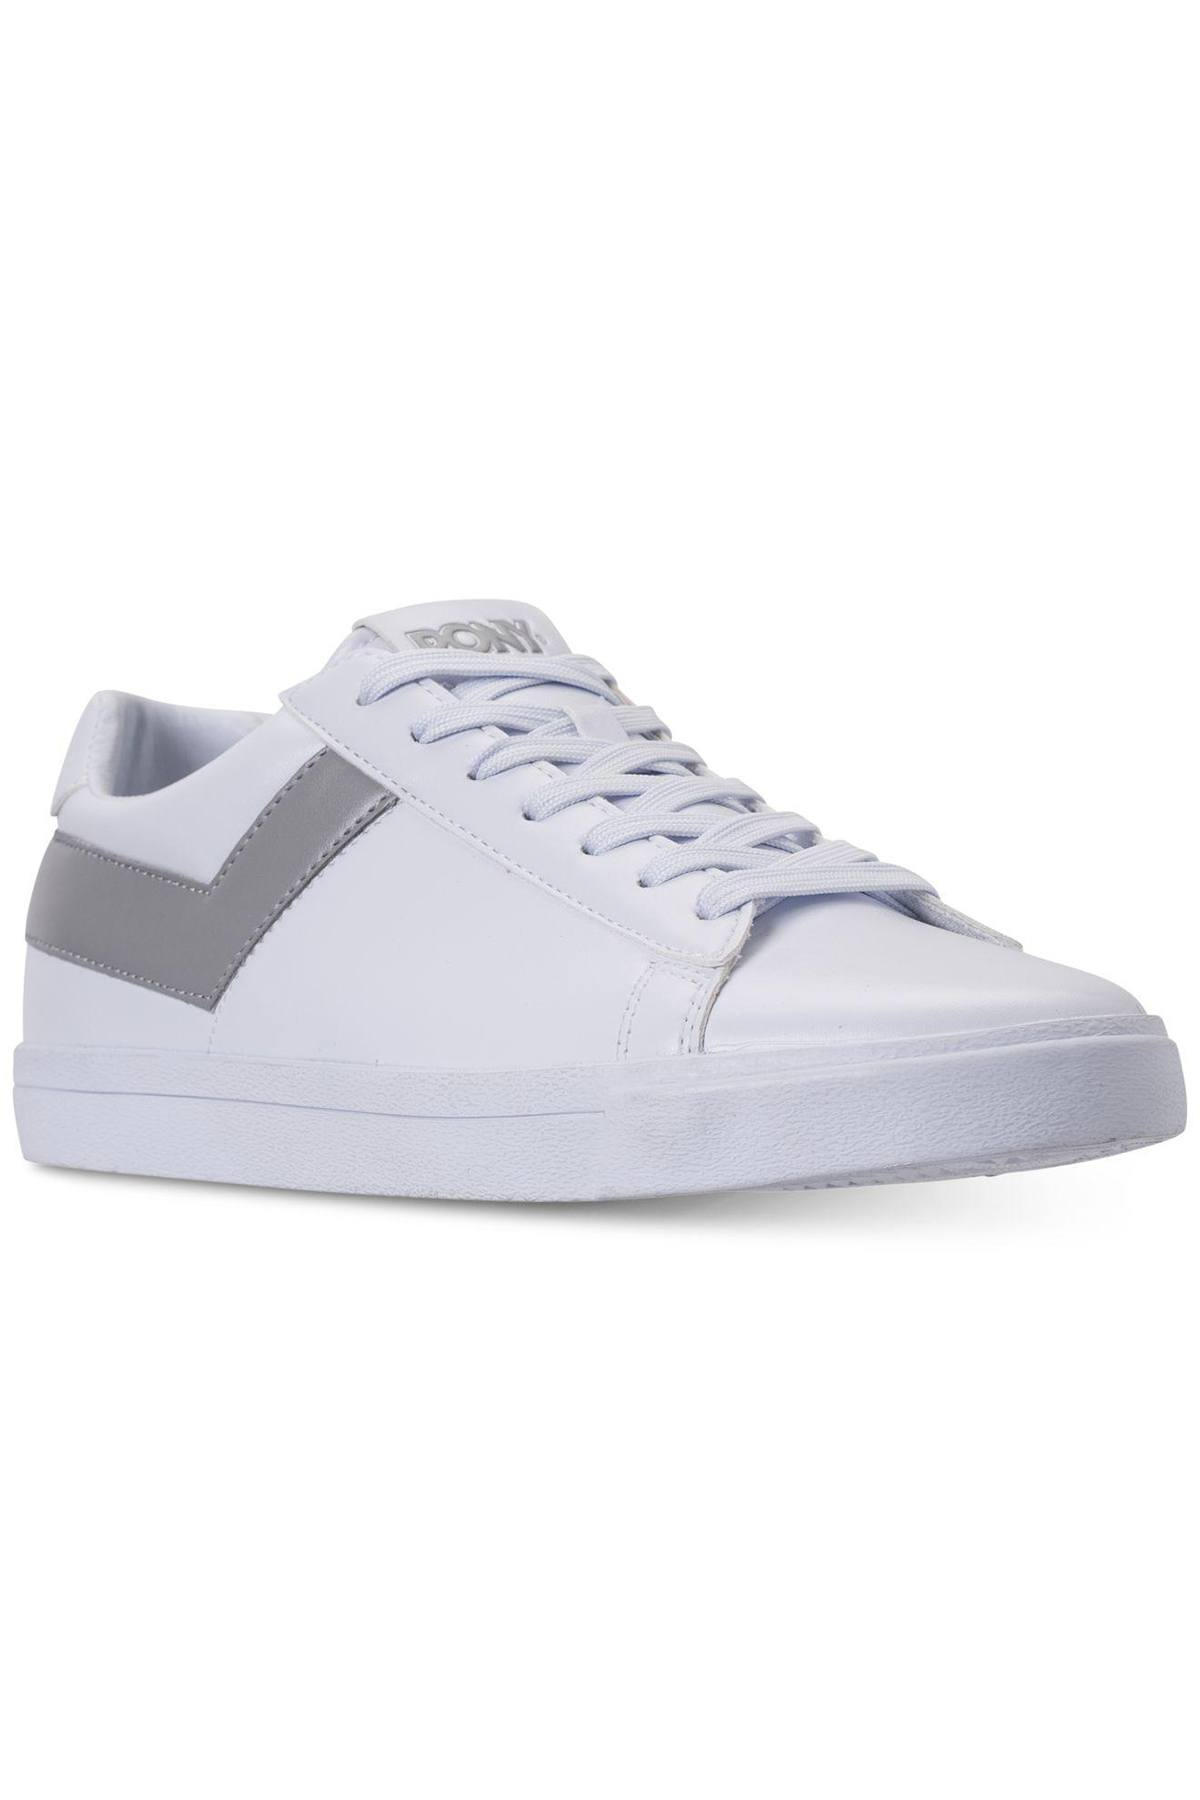 Pony White/Grey Top-Star Lo Core Sneakers